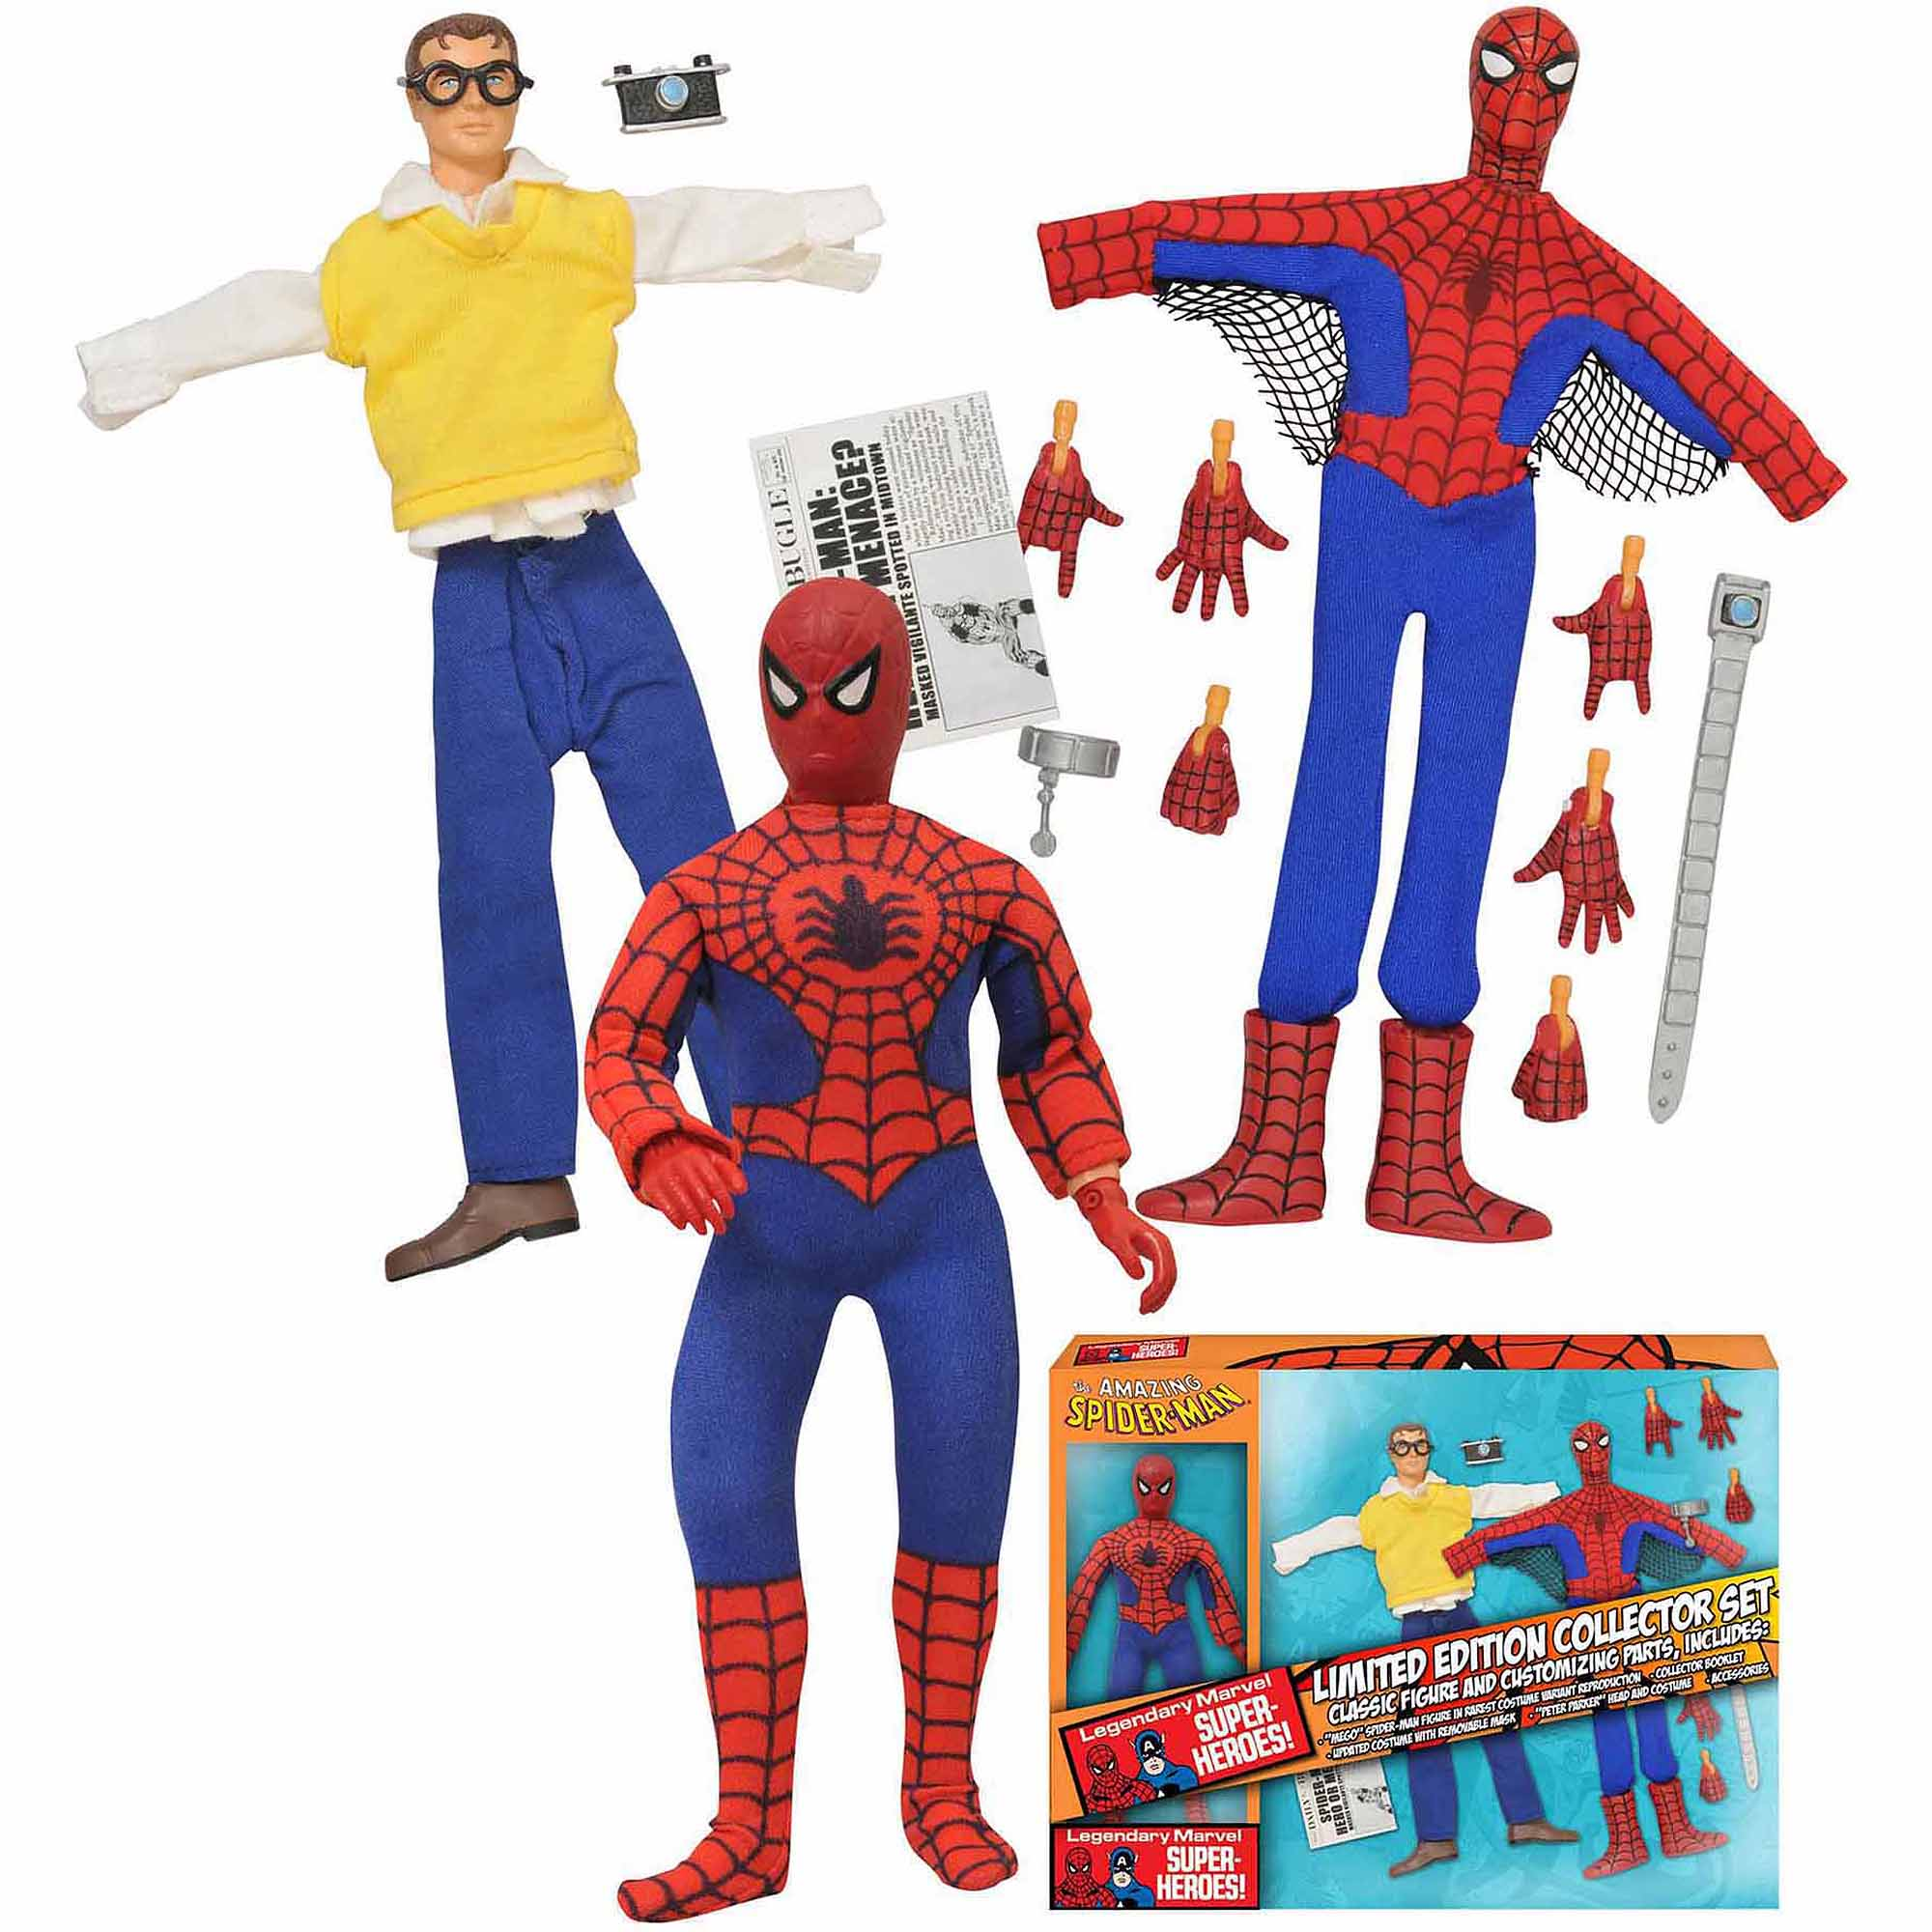 """Diamond Select Toys Marvel Limited Edition Spider-Man 8"""" Retro Action Figure Set by Diamond Select Toys"""